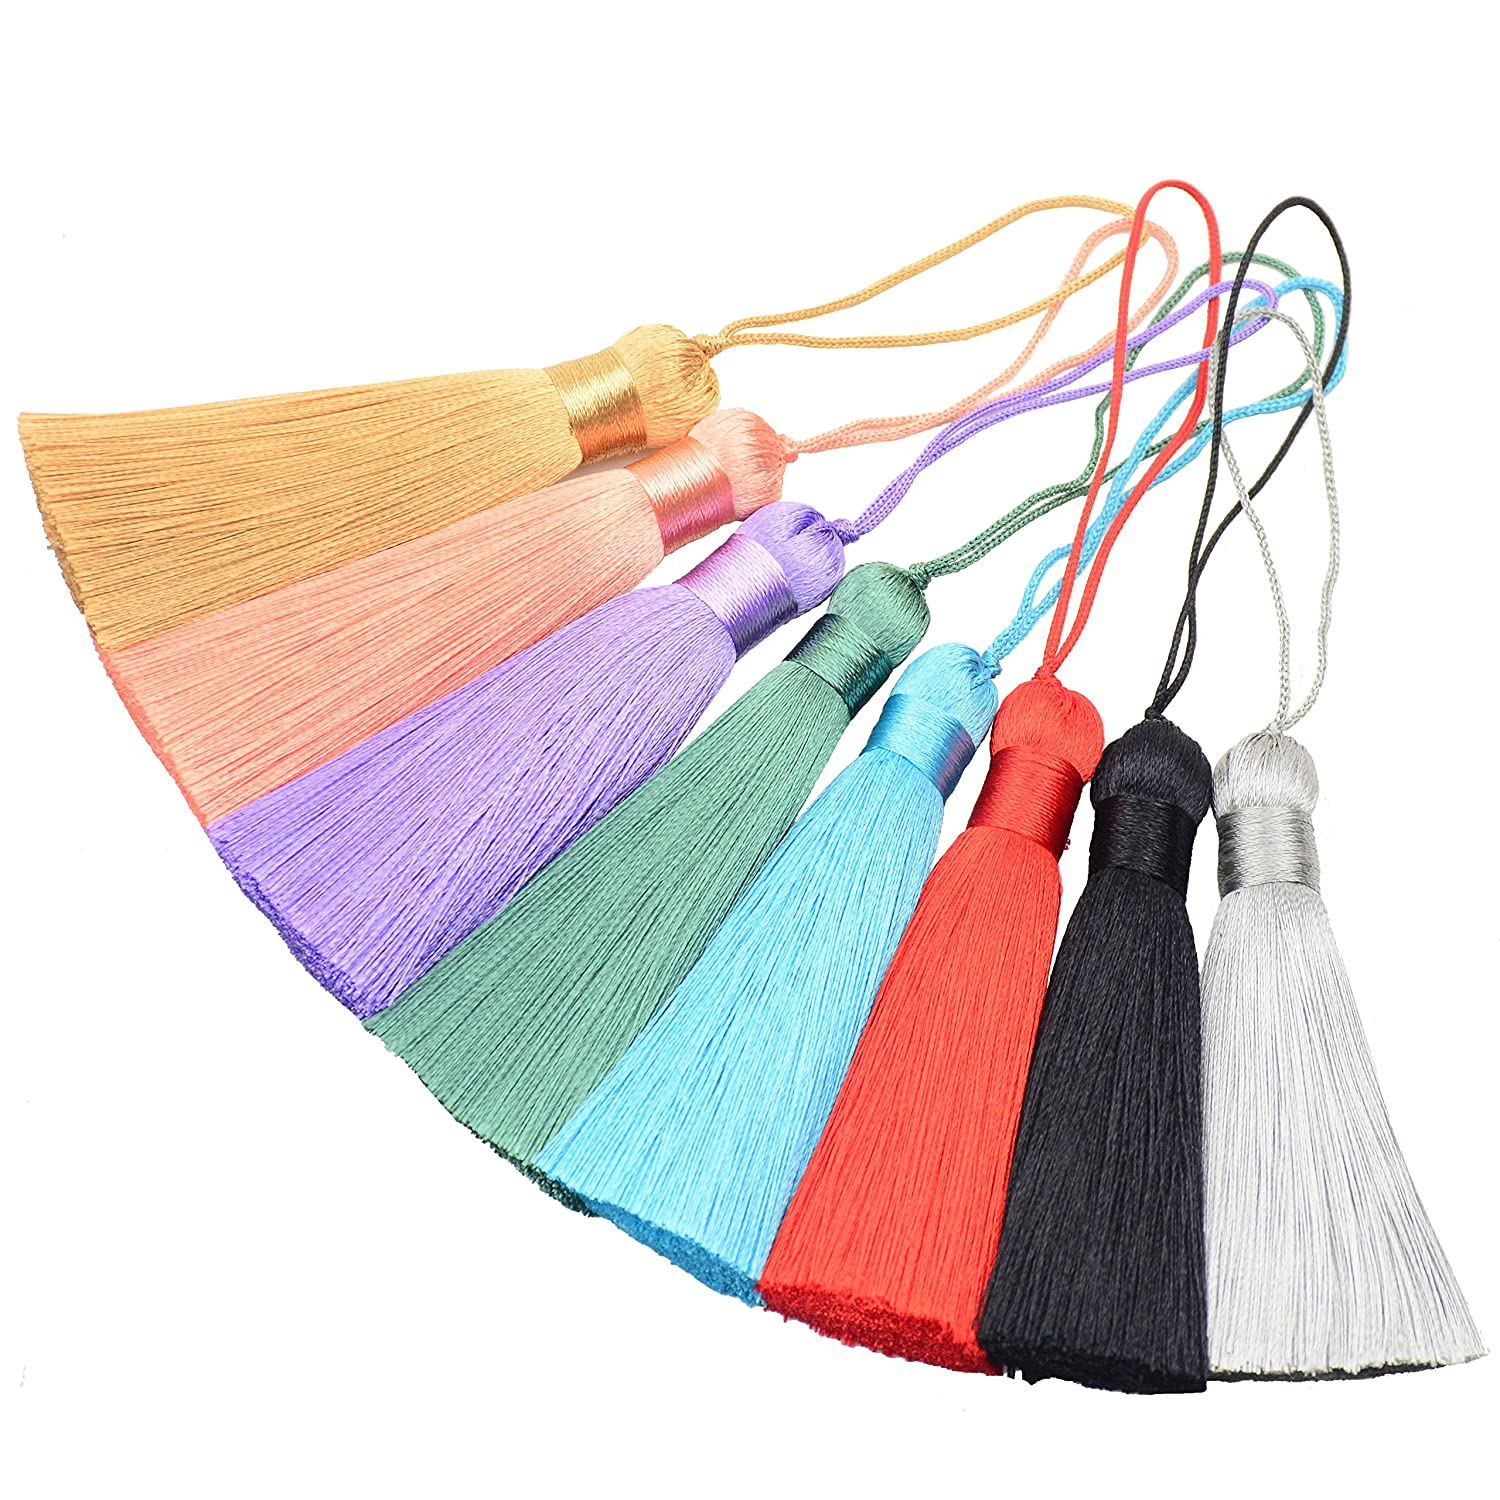 Souvenir, Black Makhry 8pc 16cm//6.29 inch Cute Chunky Tassels Soft Elegant Handmade Silky Floss Tassels with 2.75 Inch Cord Loop and Chinese Knot for Woman Earrings Jewelry Making